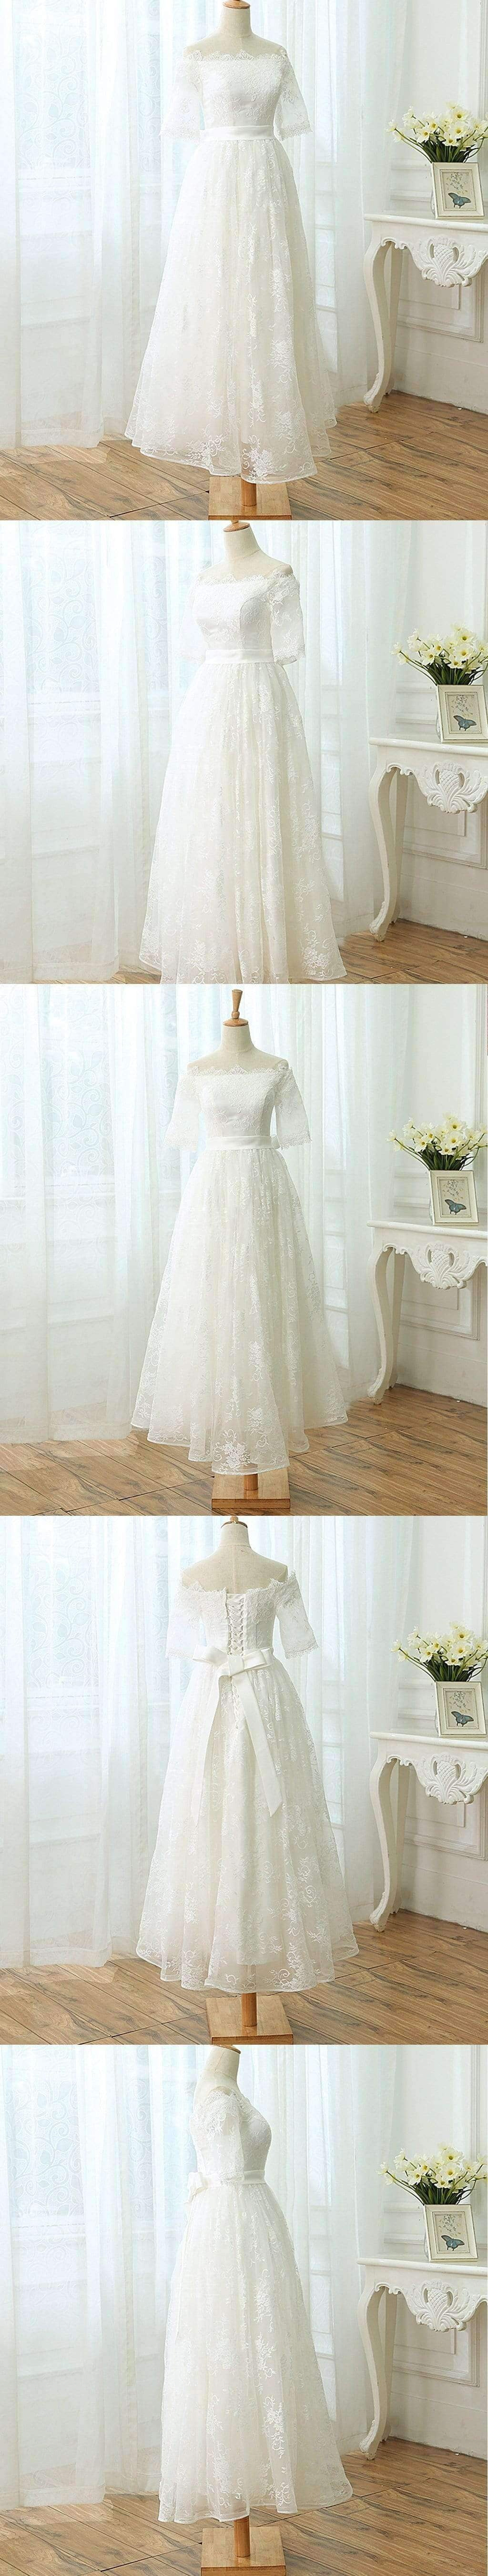 Off Shoulder Sabrina Neck Full Lace Half Sleeve Elegant Ankle-Length Wedding Dress, AB1102